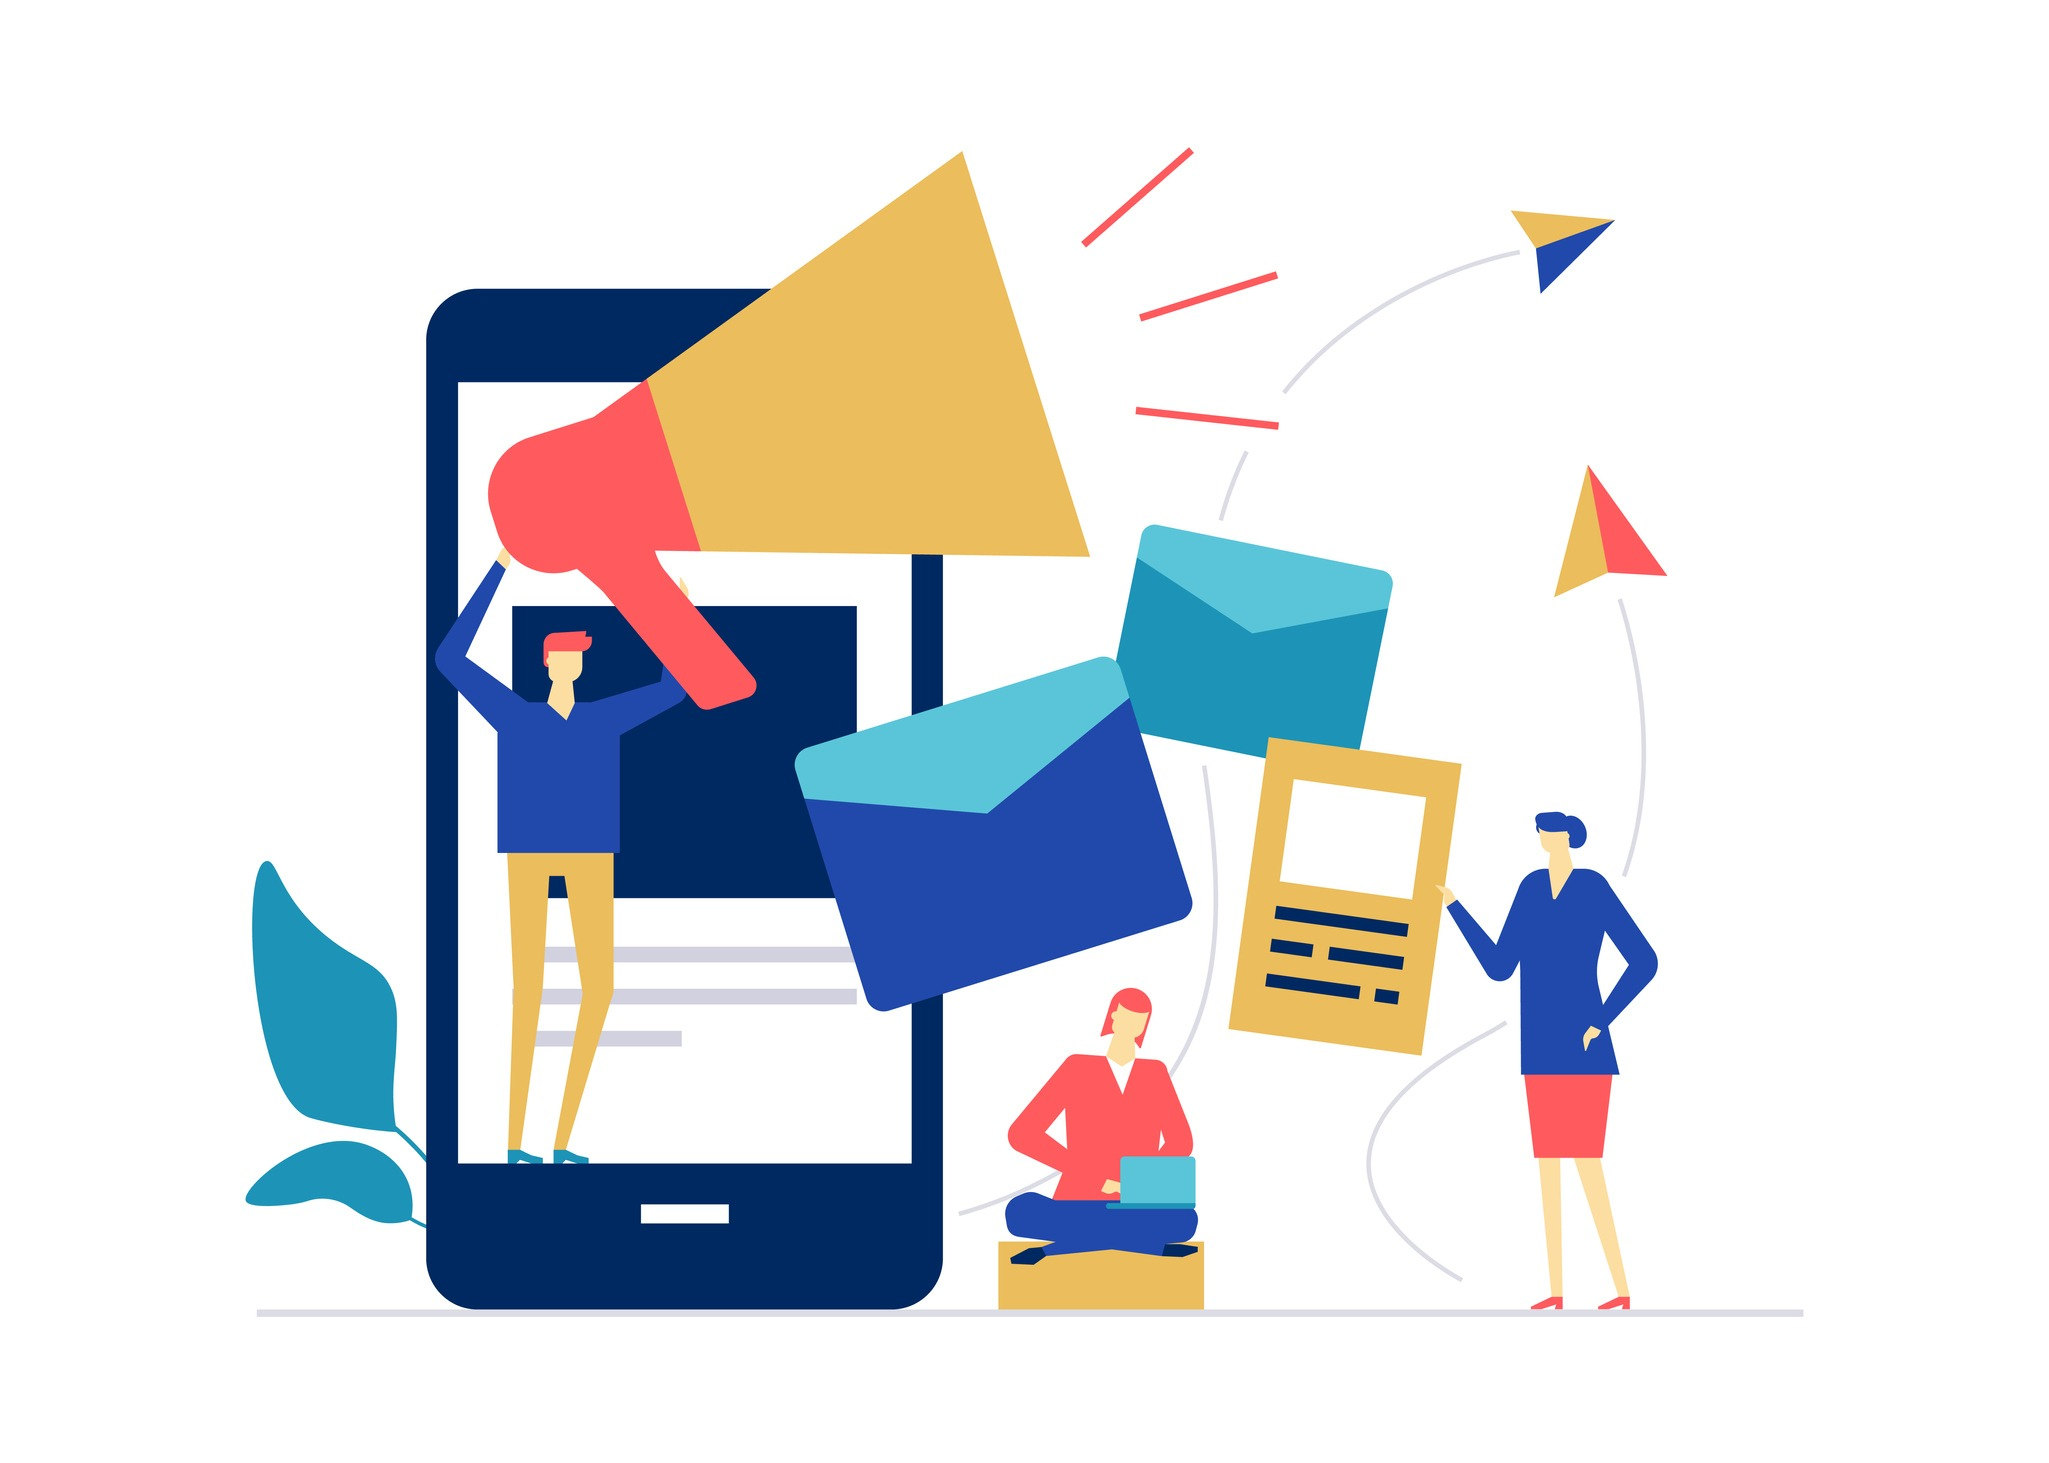 Digital marketing – flat design style colorful illustration